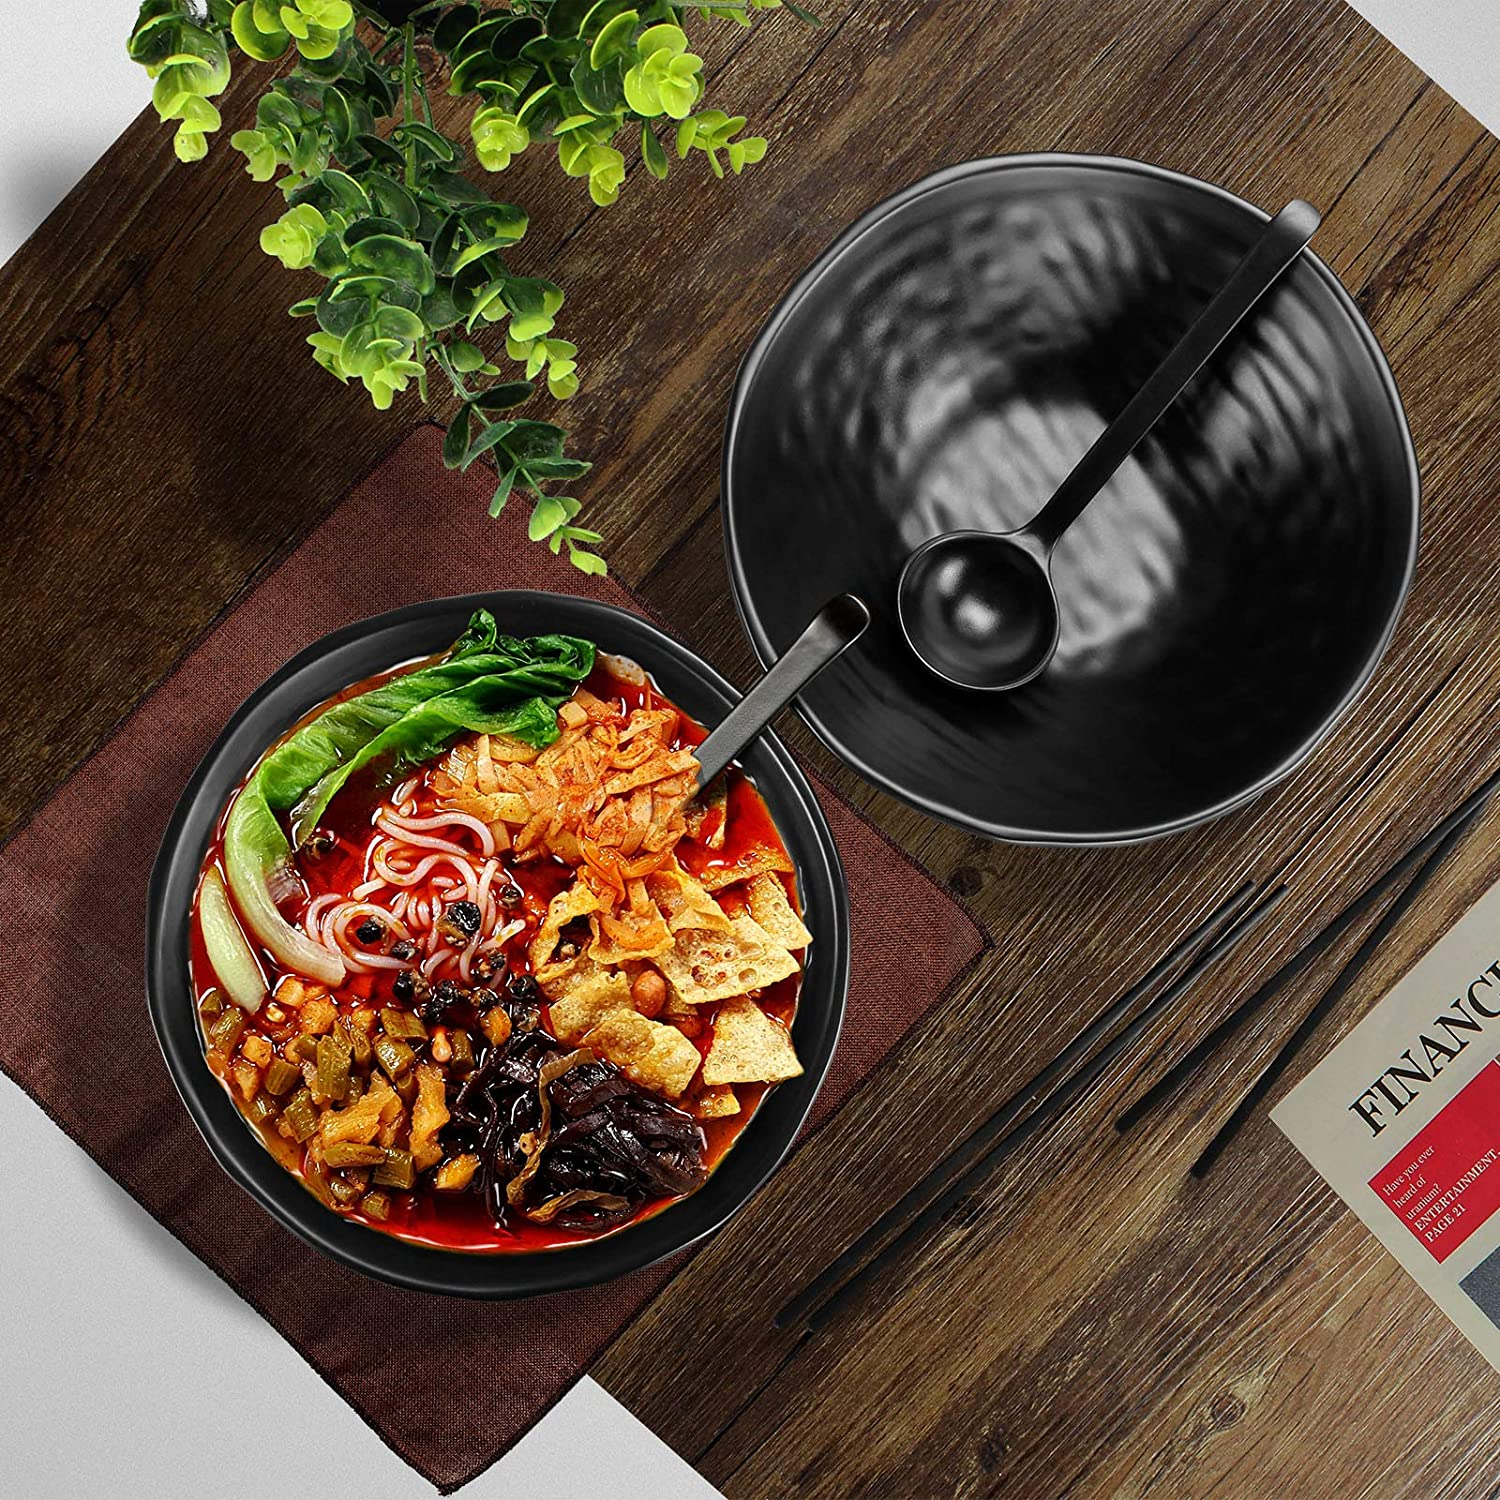 6 Pieces for Udon Japanese Noodle Soup Bowls 2 Sets Alad and Noodles 1500ml Ramen Bowls with Matching Spoon and Chopsticks